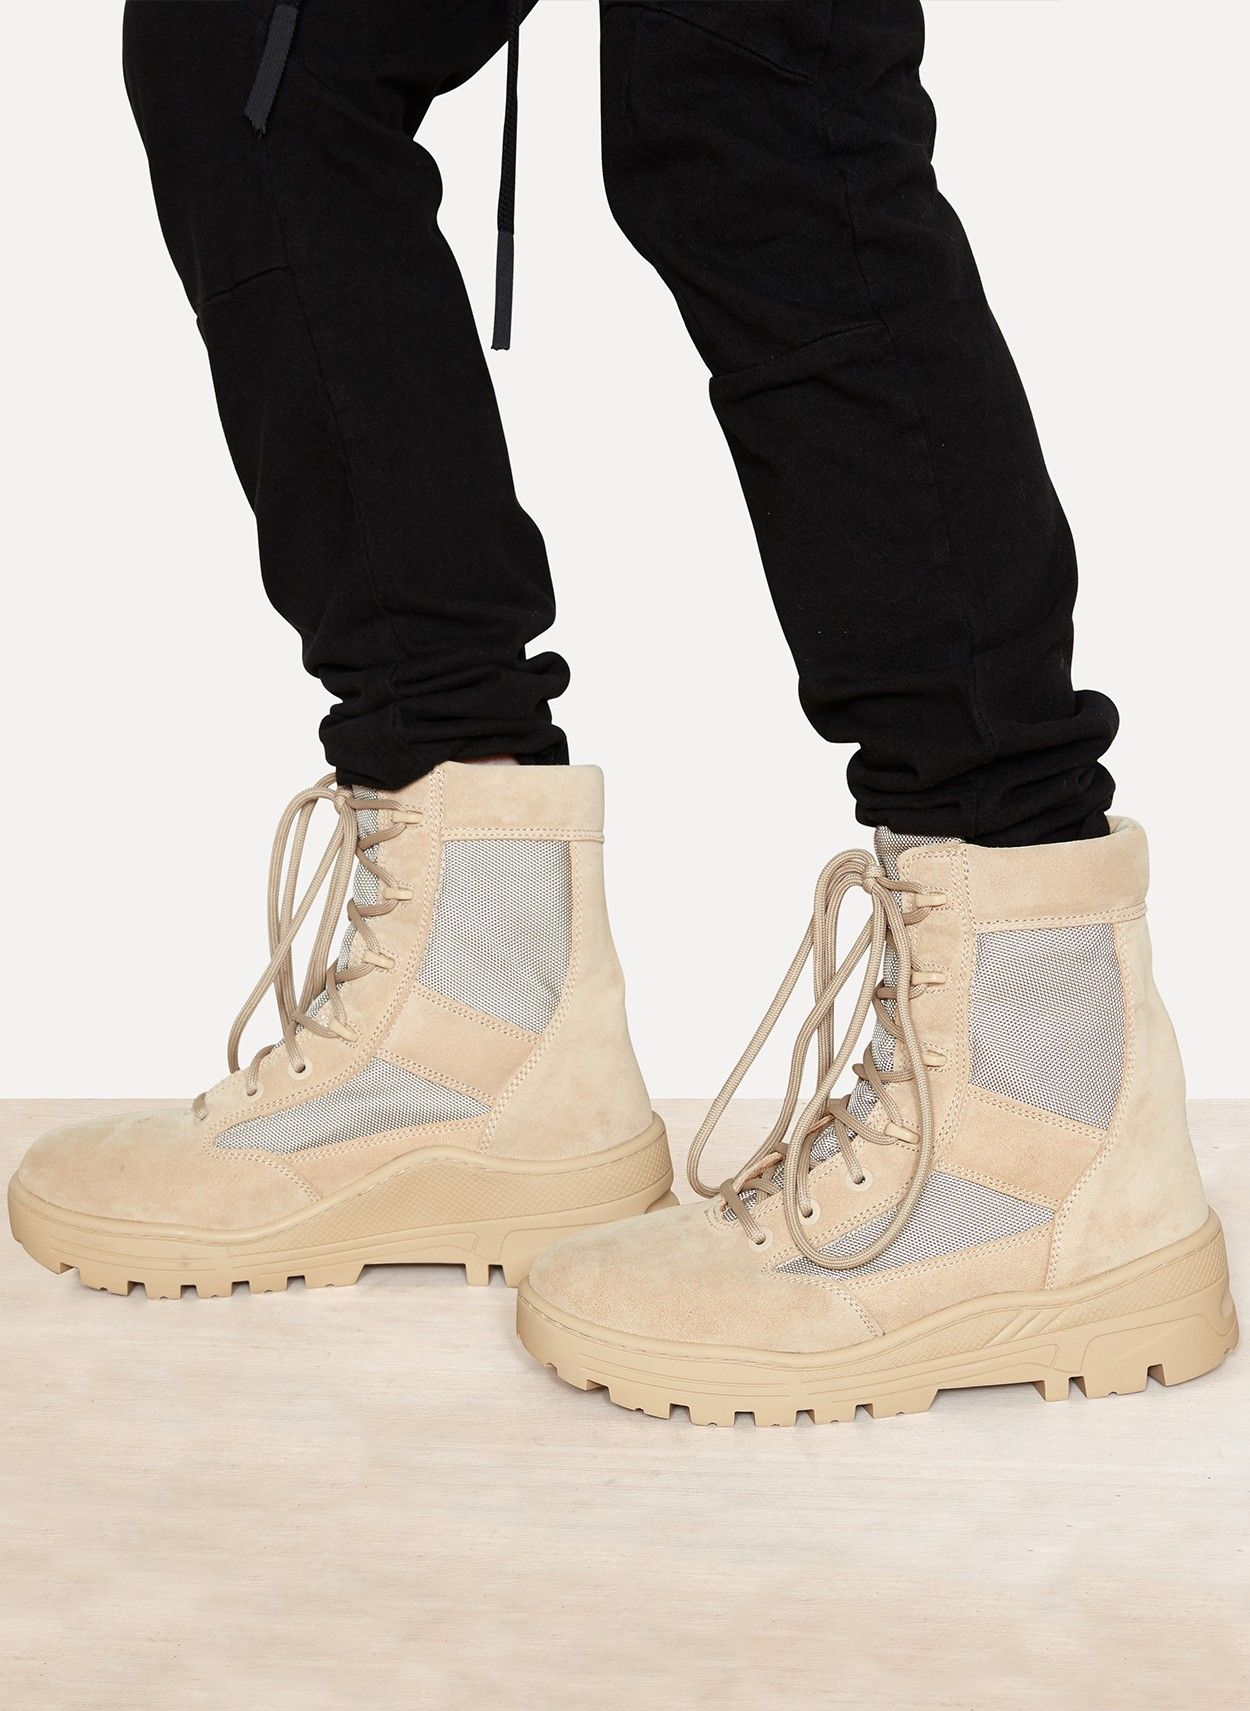 b4f98cf6e44b6 Yeezy by Kanye West Season 4 Mens Combat Boot Crosta Light Sand Calfskin  Suede